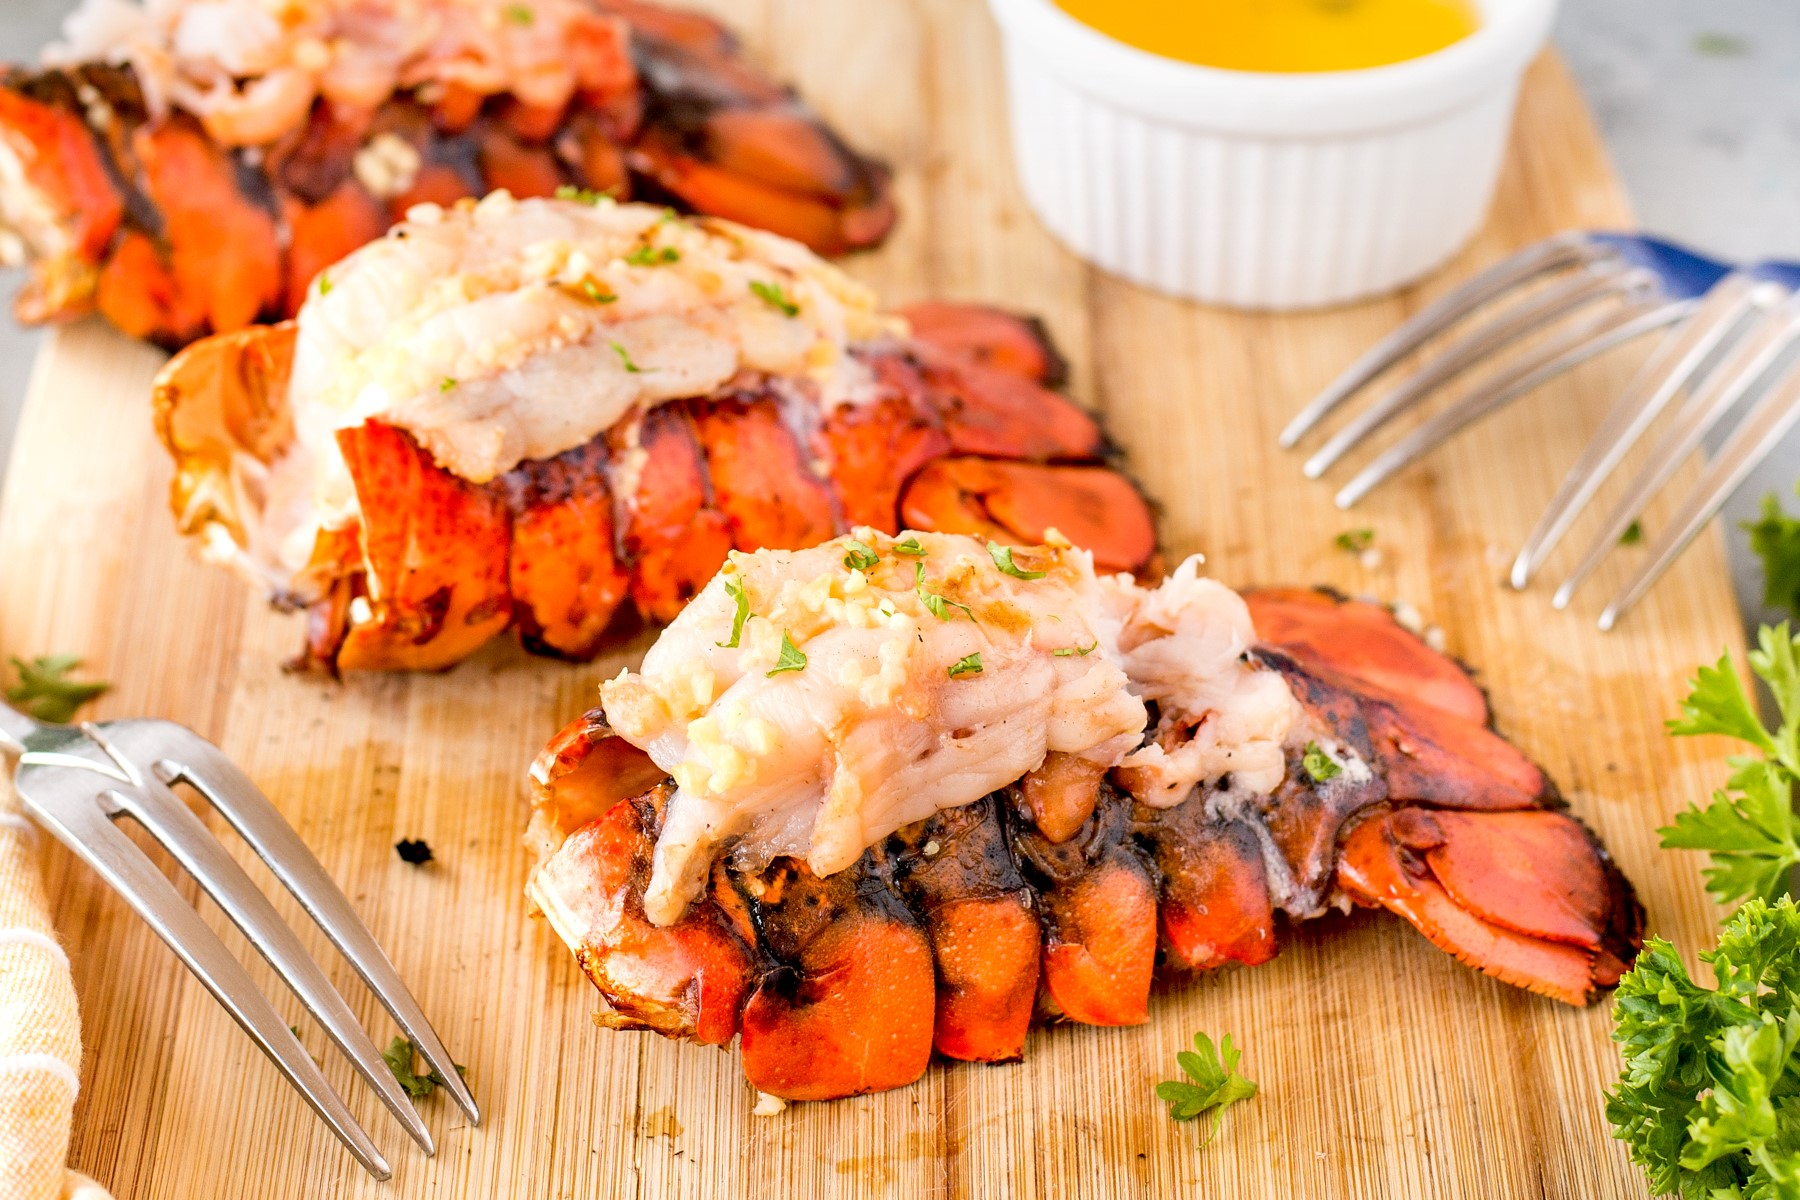 Grilled lobster tails on a wooden cutting board with a bowl of melted butter and 3 forks.